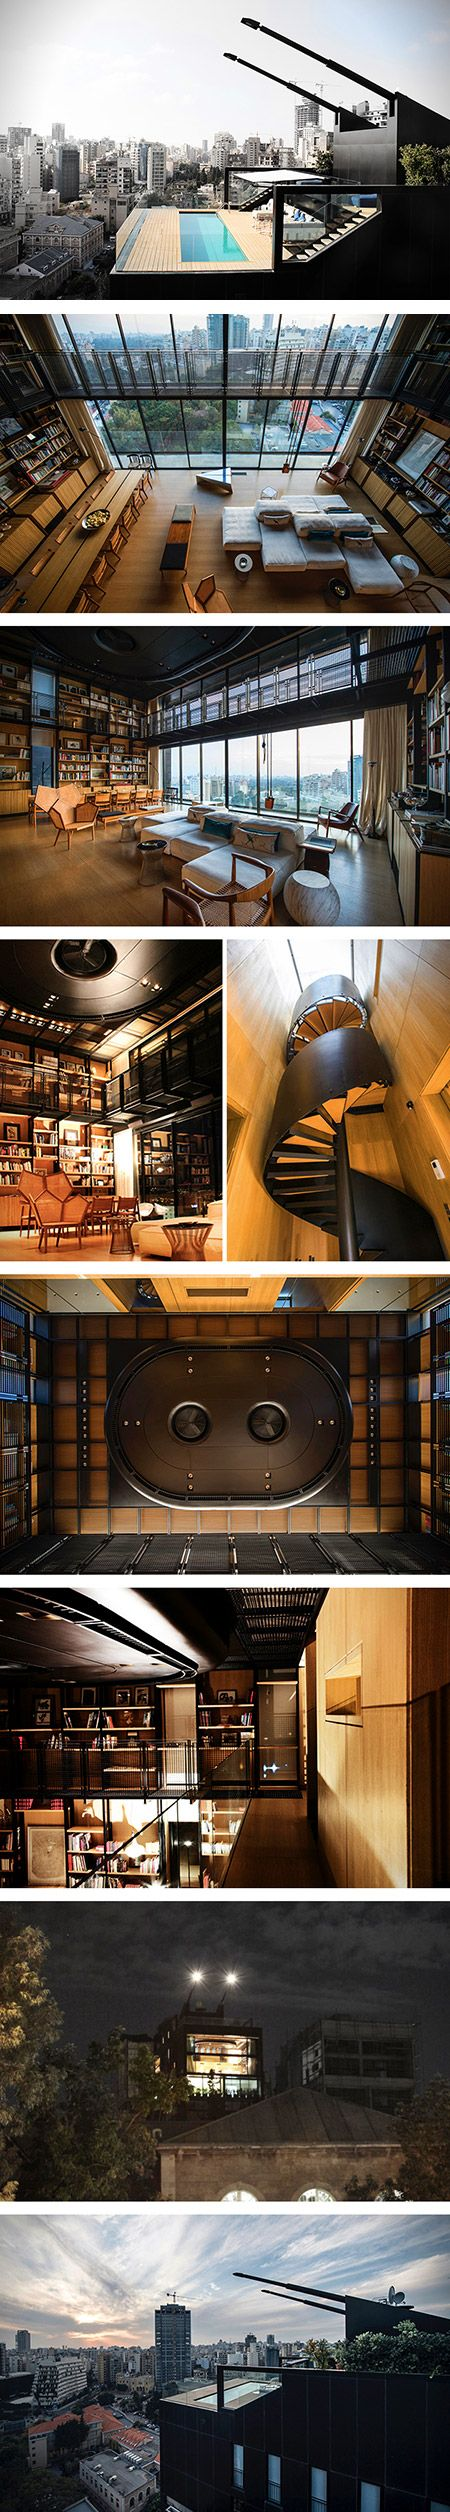 Covering badass bachelor pads on a regular basis, it takes a lot for us to get excited when it comes to apartments. Well that's exactly what architect Bernard Khoury was able to do with the amazing NBK Residence.  The famous Lebanese architect has designed a contender for the greatest bachelor pad of all time. Located in Beirut, this 3-level abode spans a massive 4,000 square foot, and includes 5 bedrooms along with 7 bathrooms.: